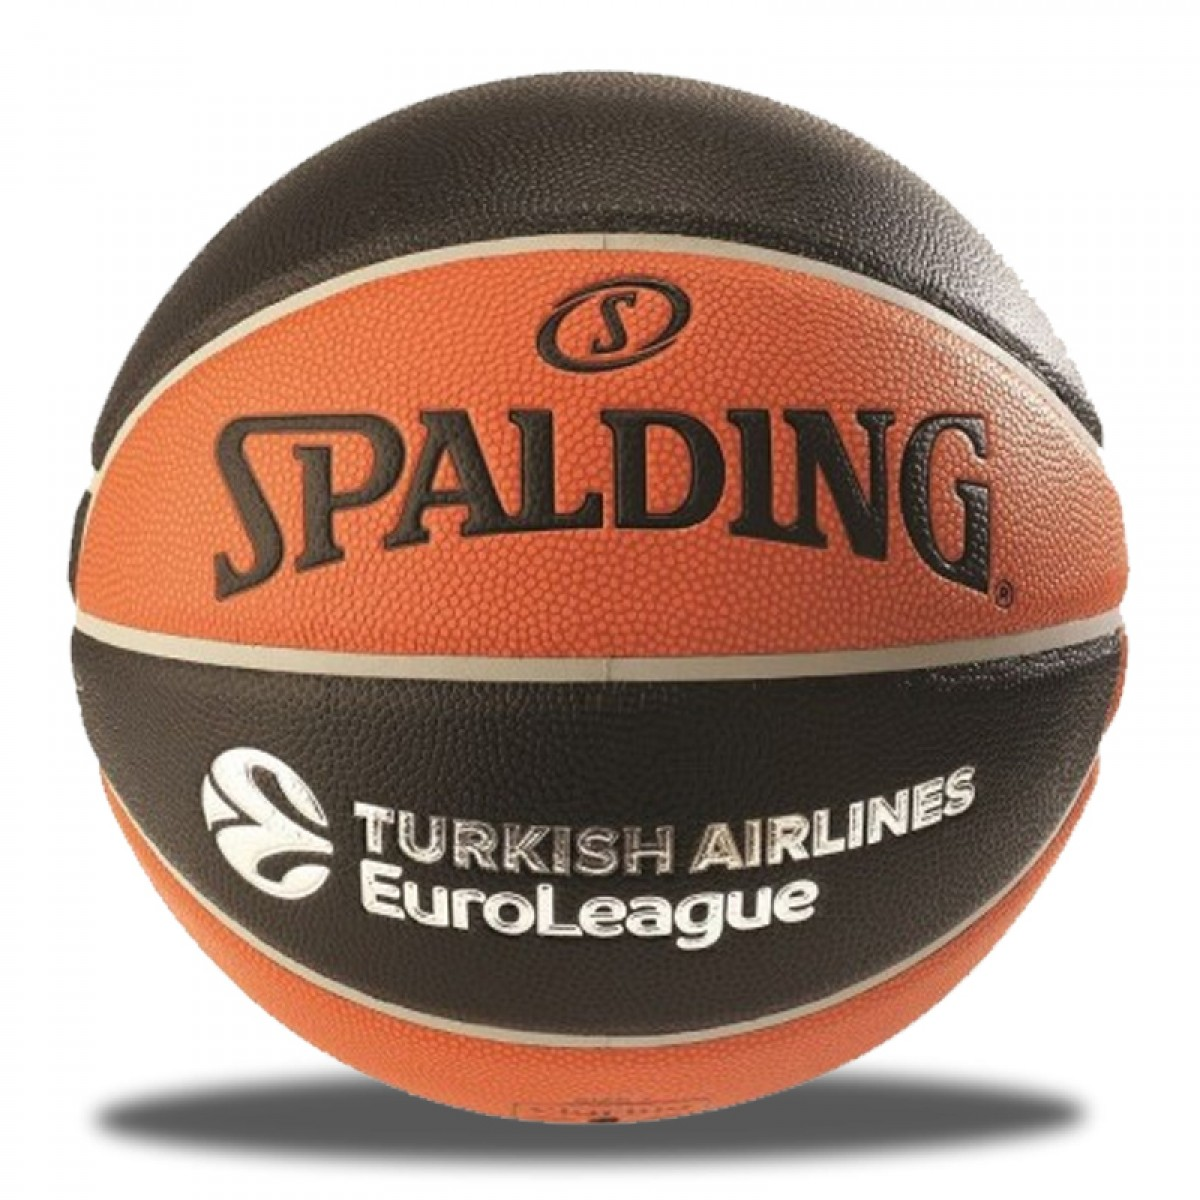 Spalding TF-500 Euroleague